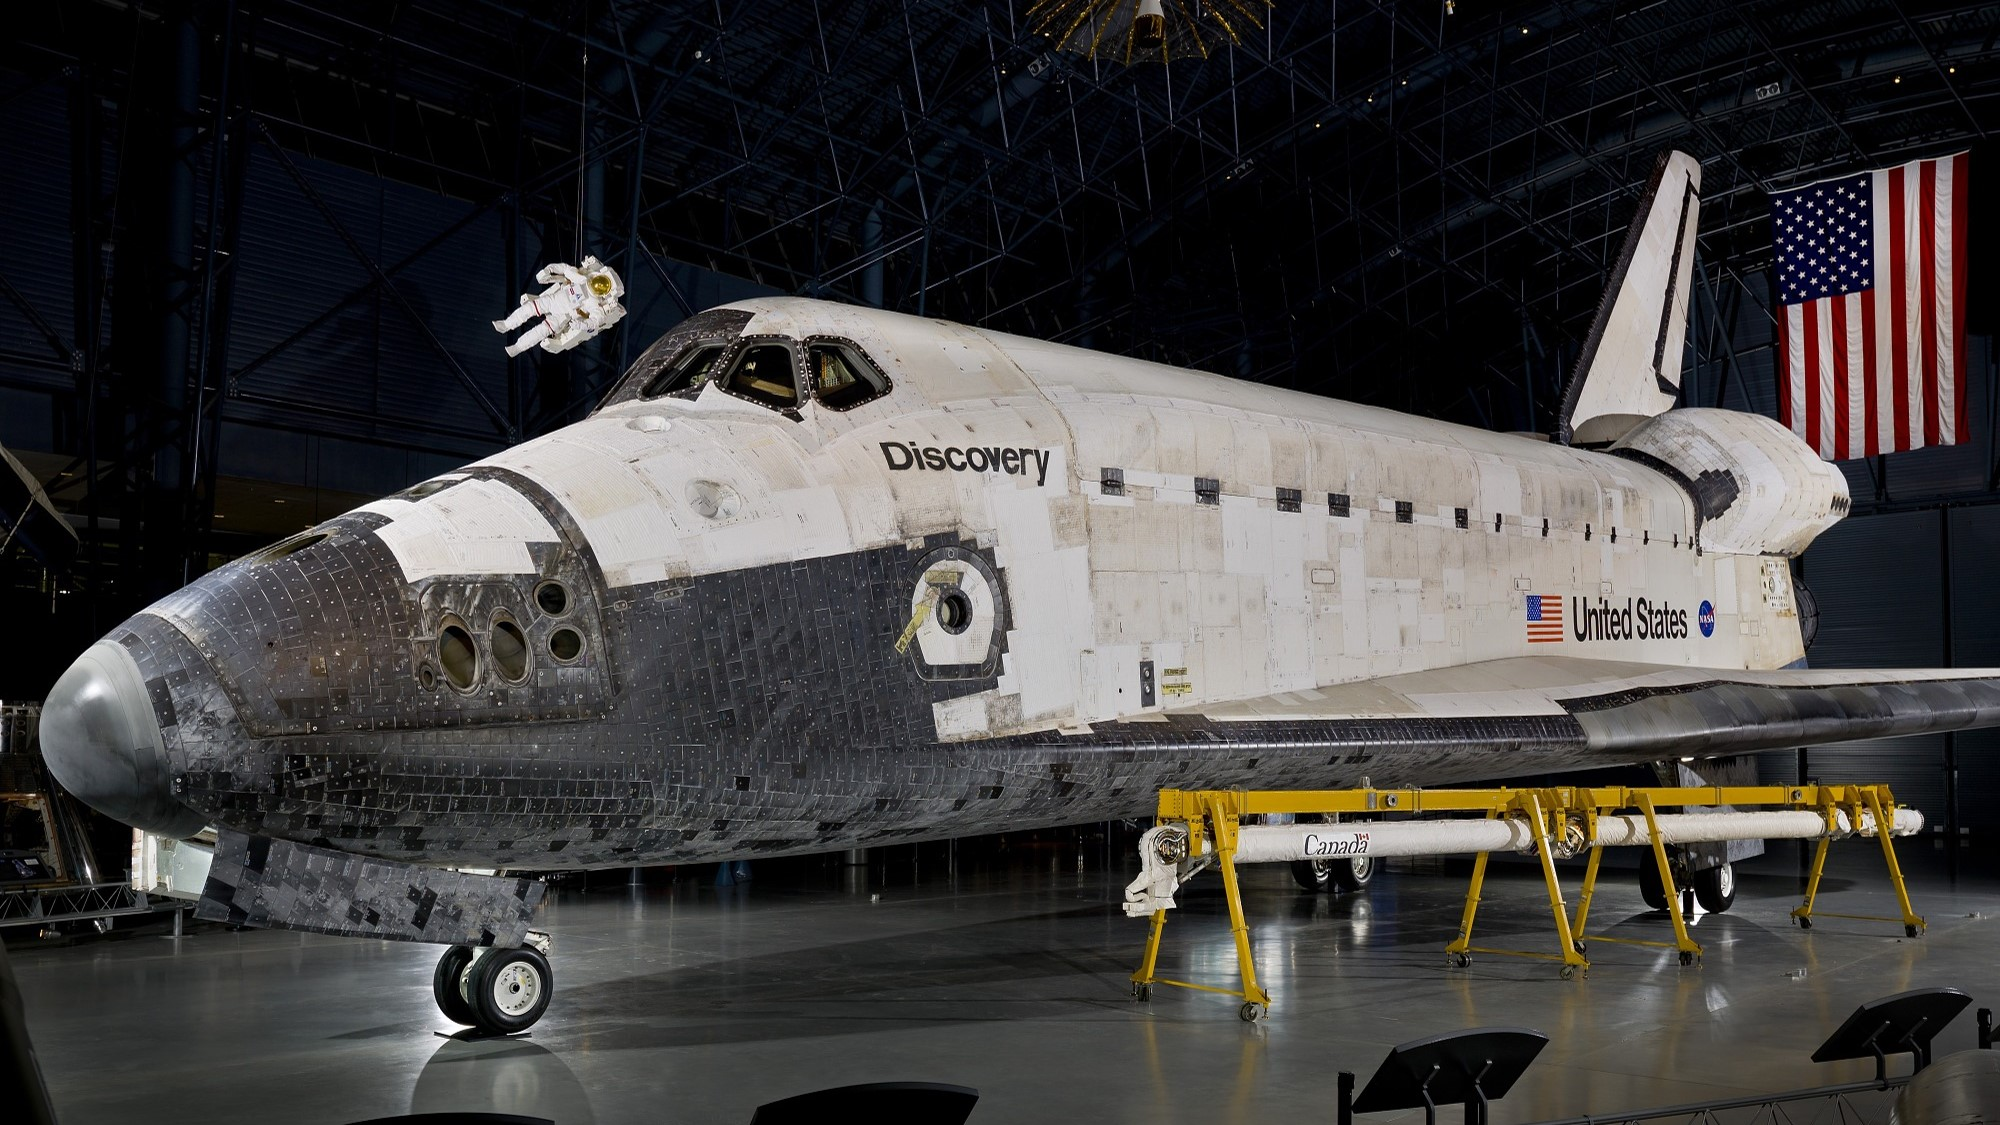 Smithsonian - Space Shuttle Discovery